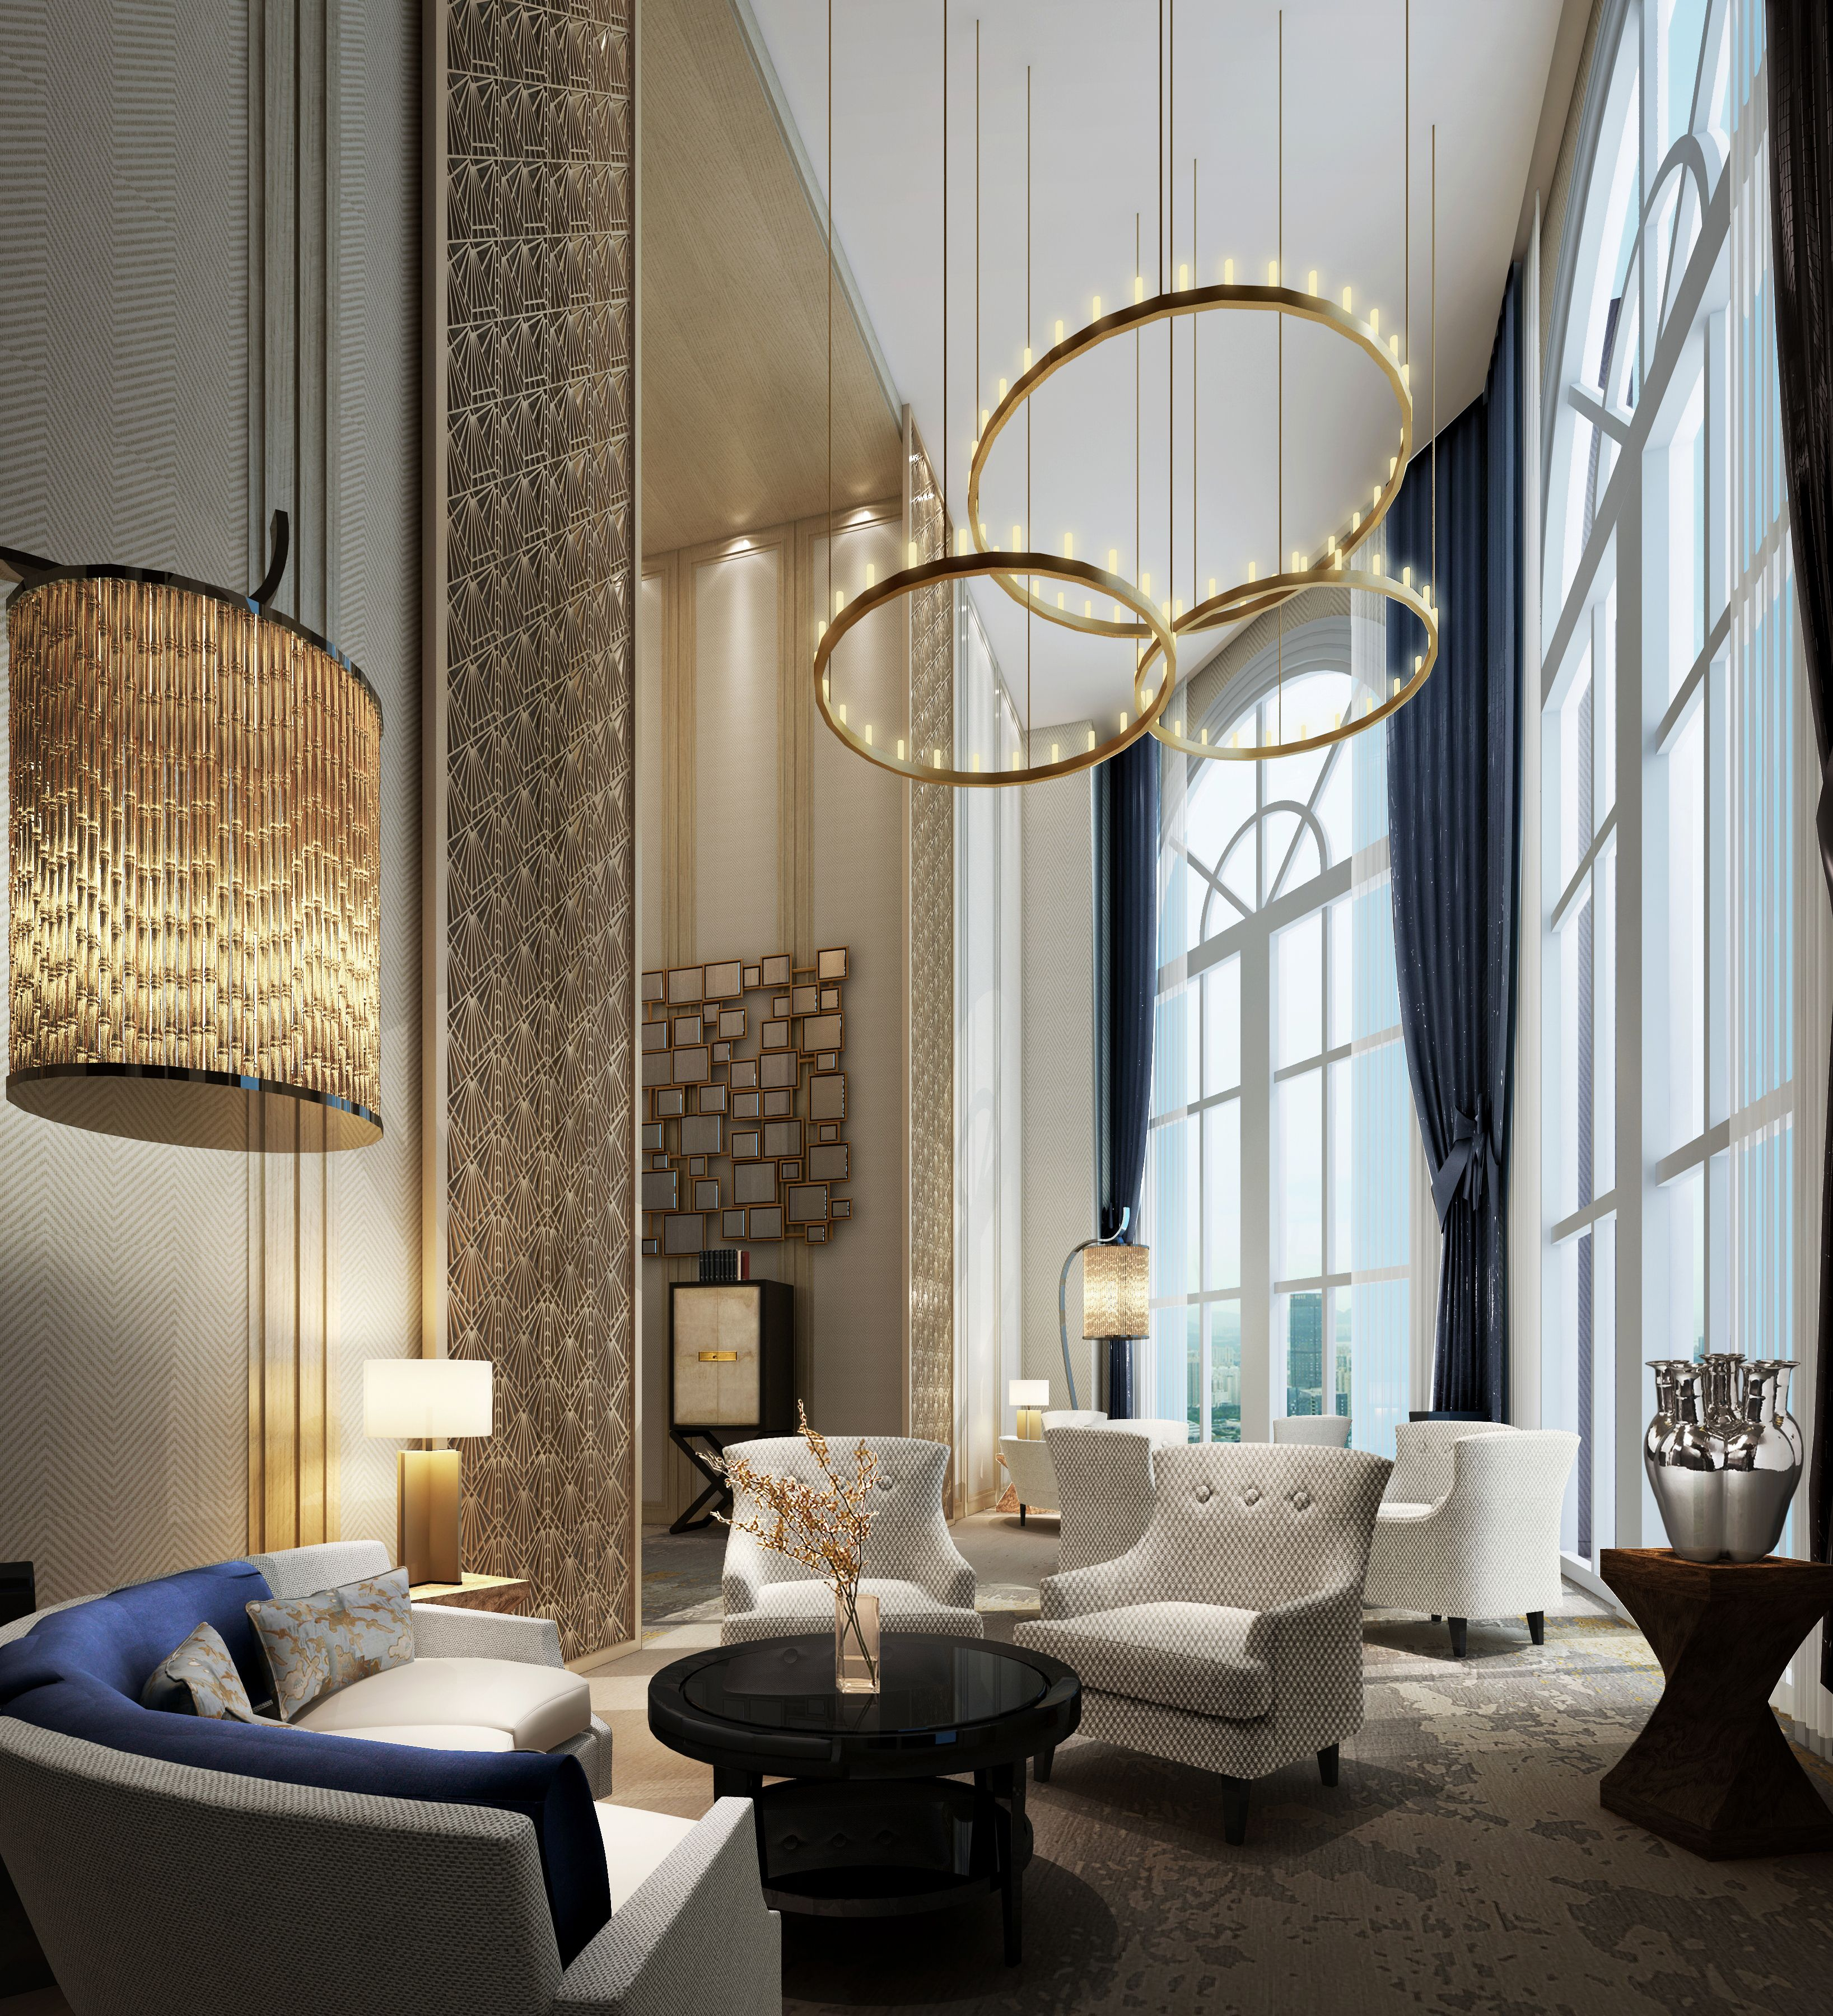 Home Interior Design Concepts: ID-Commercial, Hospitality & Office